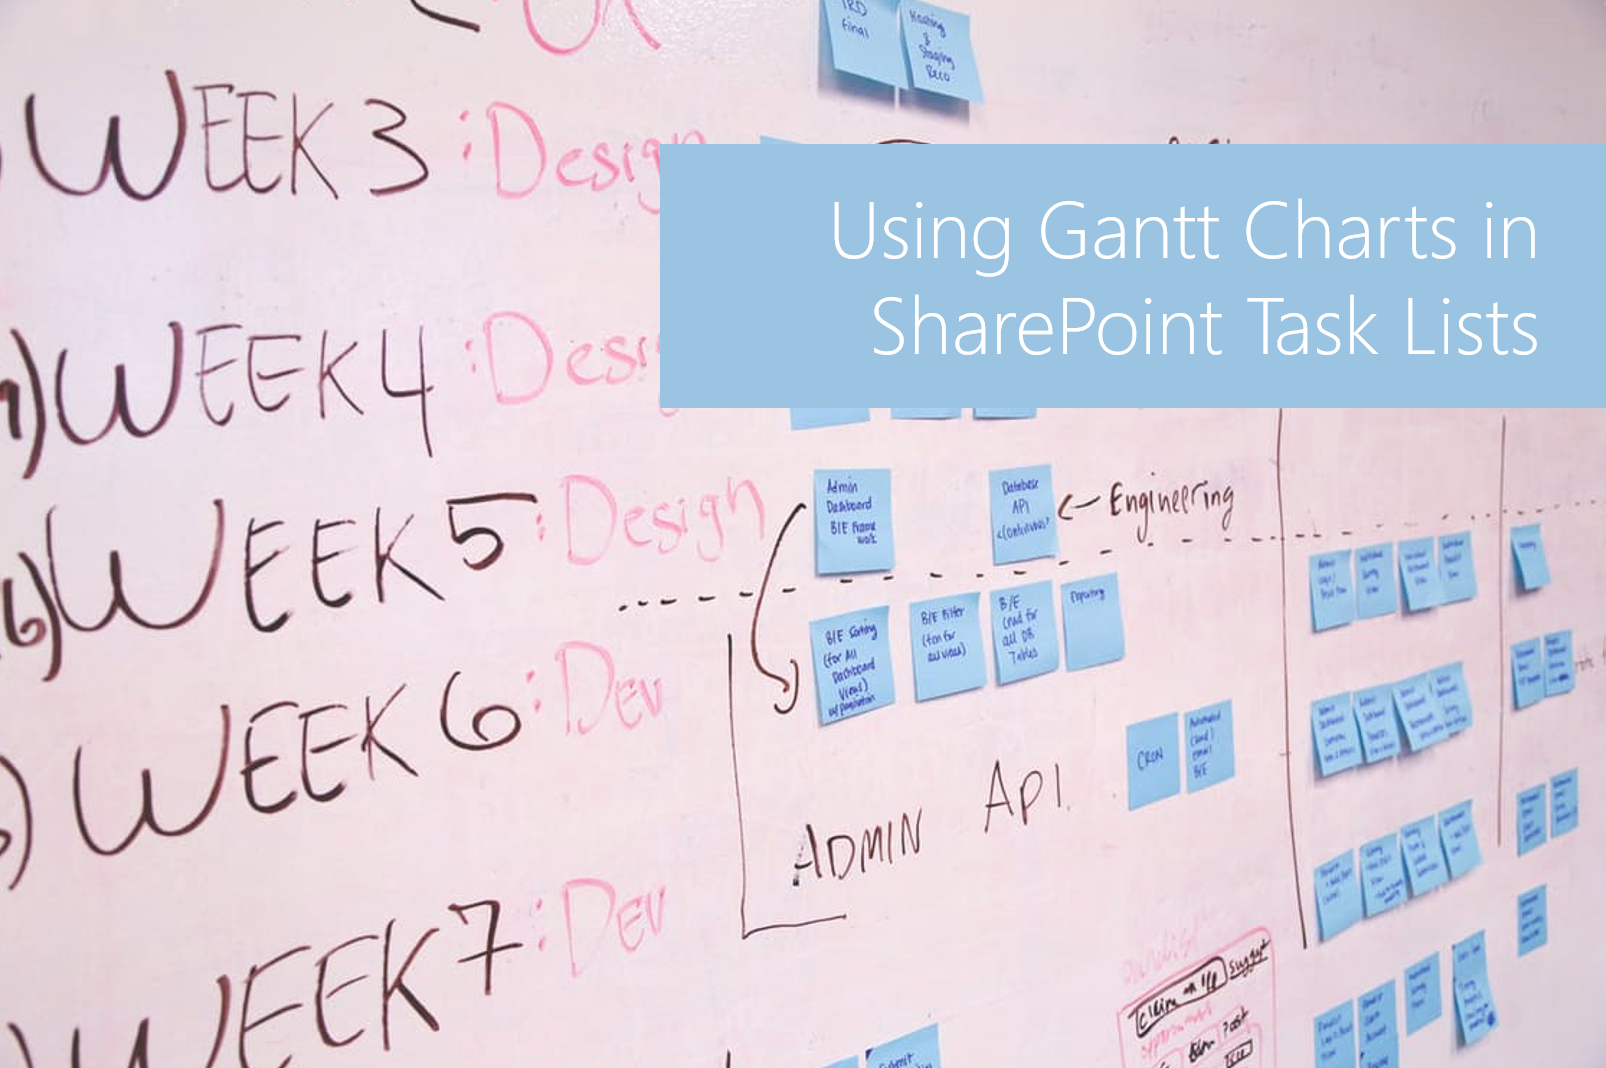 Day 350 using gantt charts in sharepoint task lists tracy van 2017 02 13 201918 images for social media ccuart Gallery